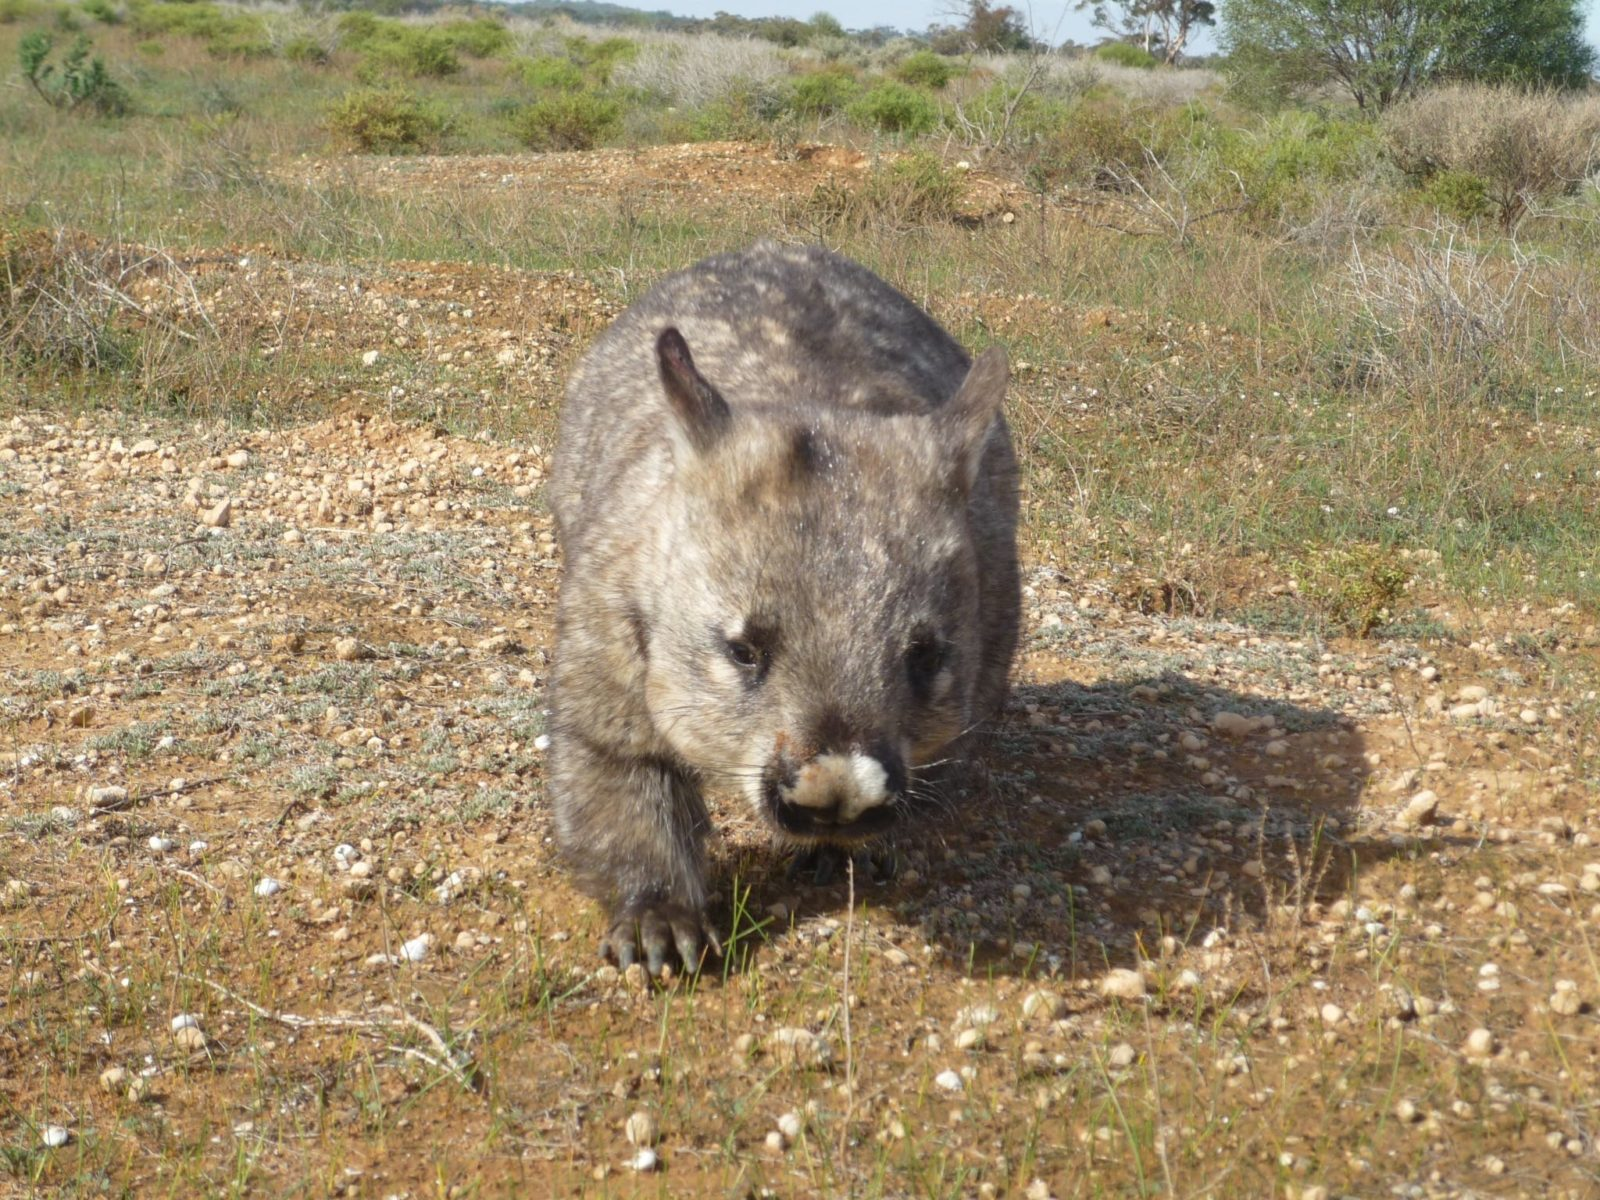 The southern hairy-nosed Wombat is a resident of Brookfield Conservation Park